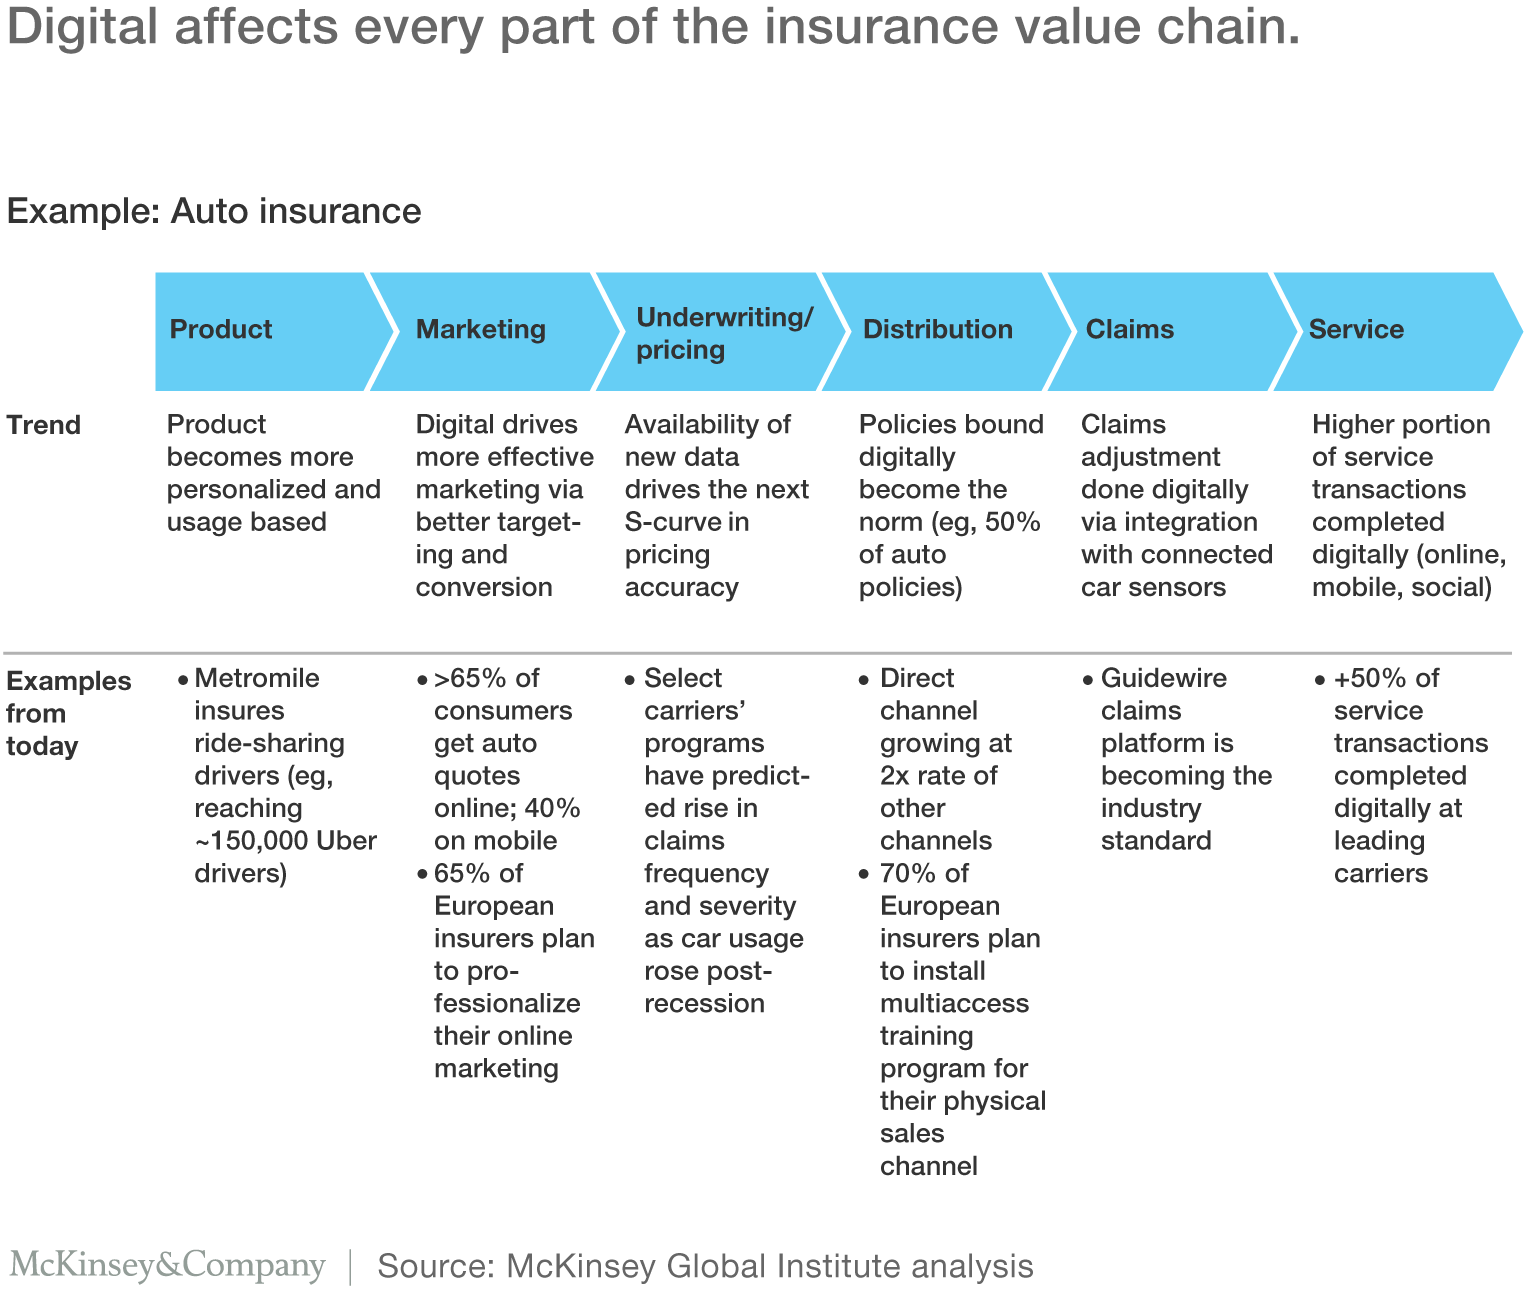 Metlife Auto Claims >> Digital affects every part of the insurance value chain. McKinsey | Frontend Trends | Pinterest ...